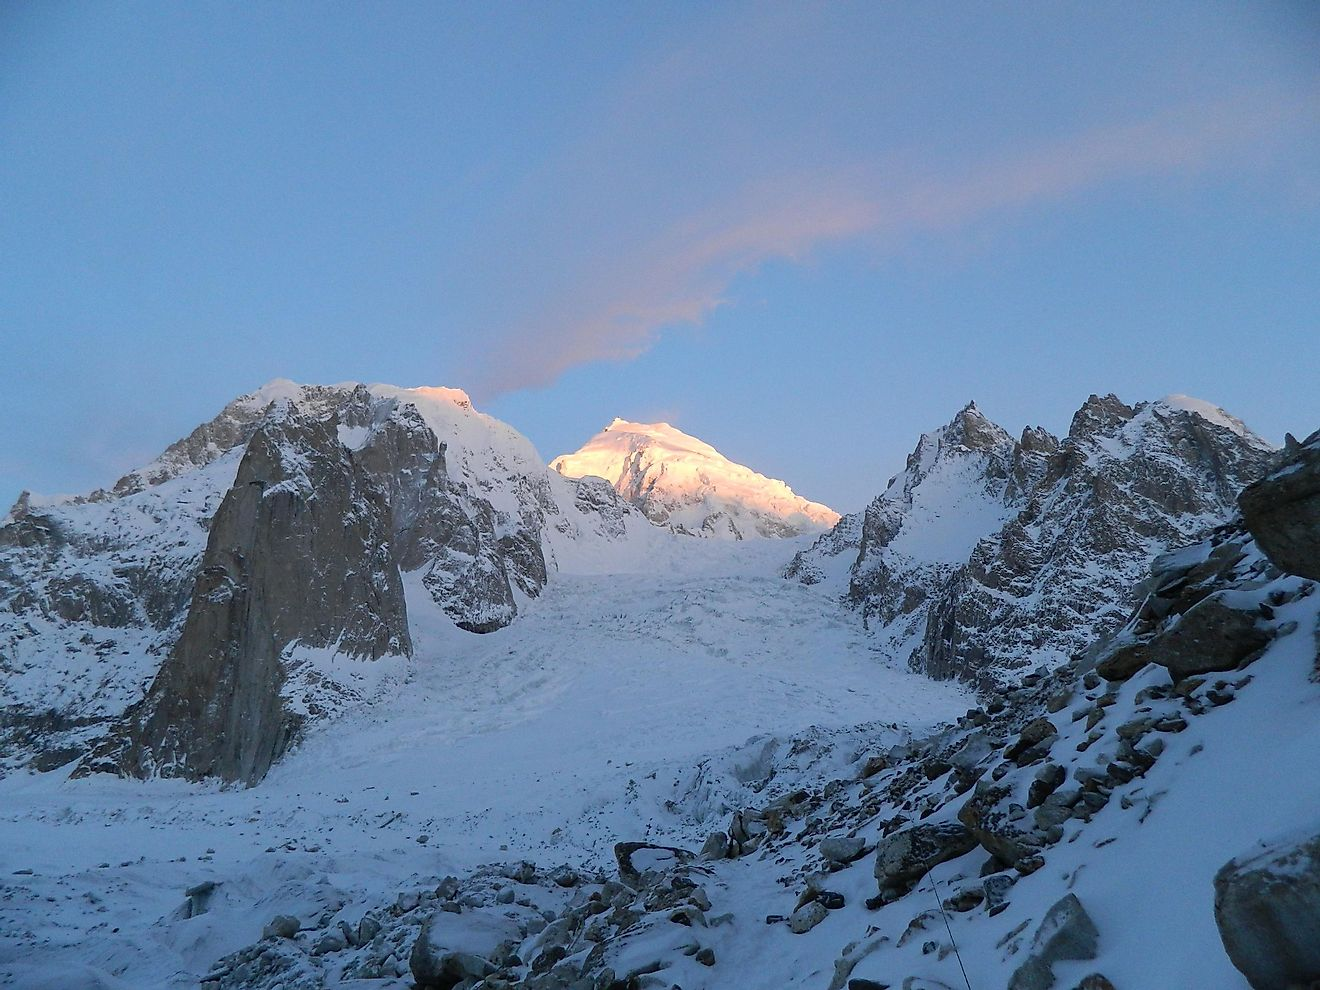 Sunset At The Siachen Glacier, The Second Longest Non-Polar Glacier In The World.